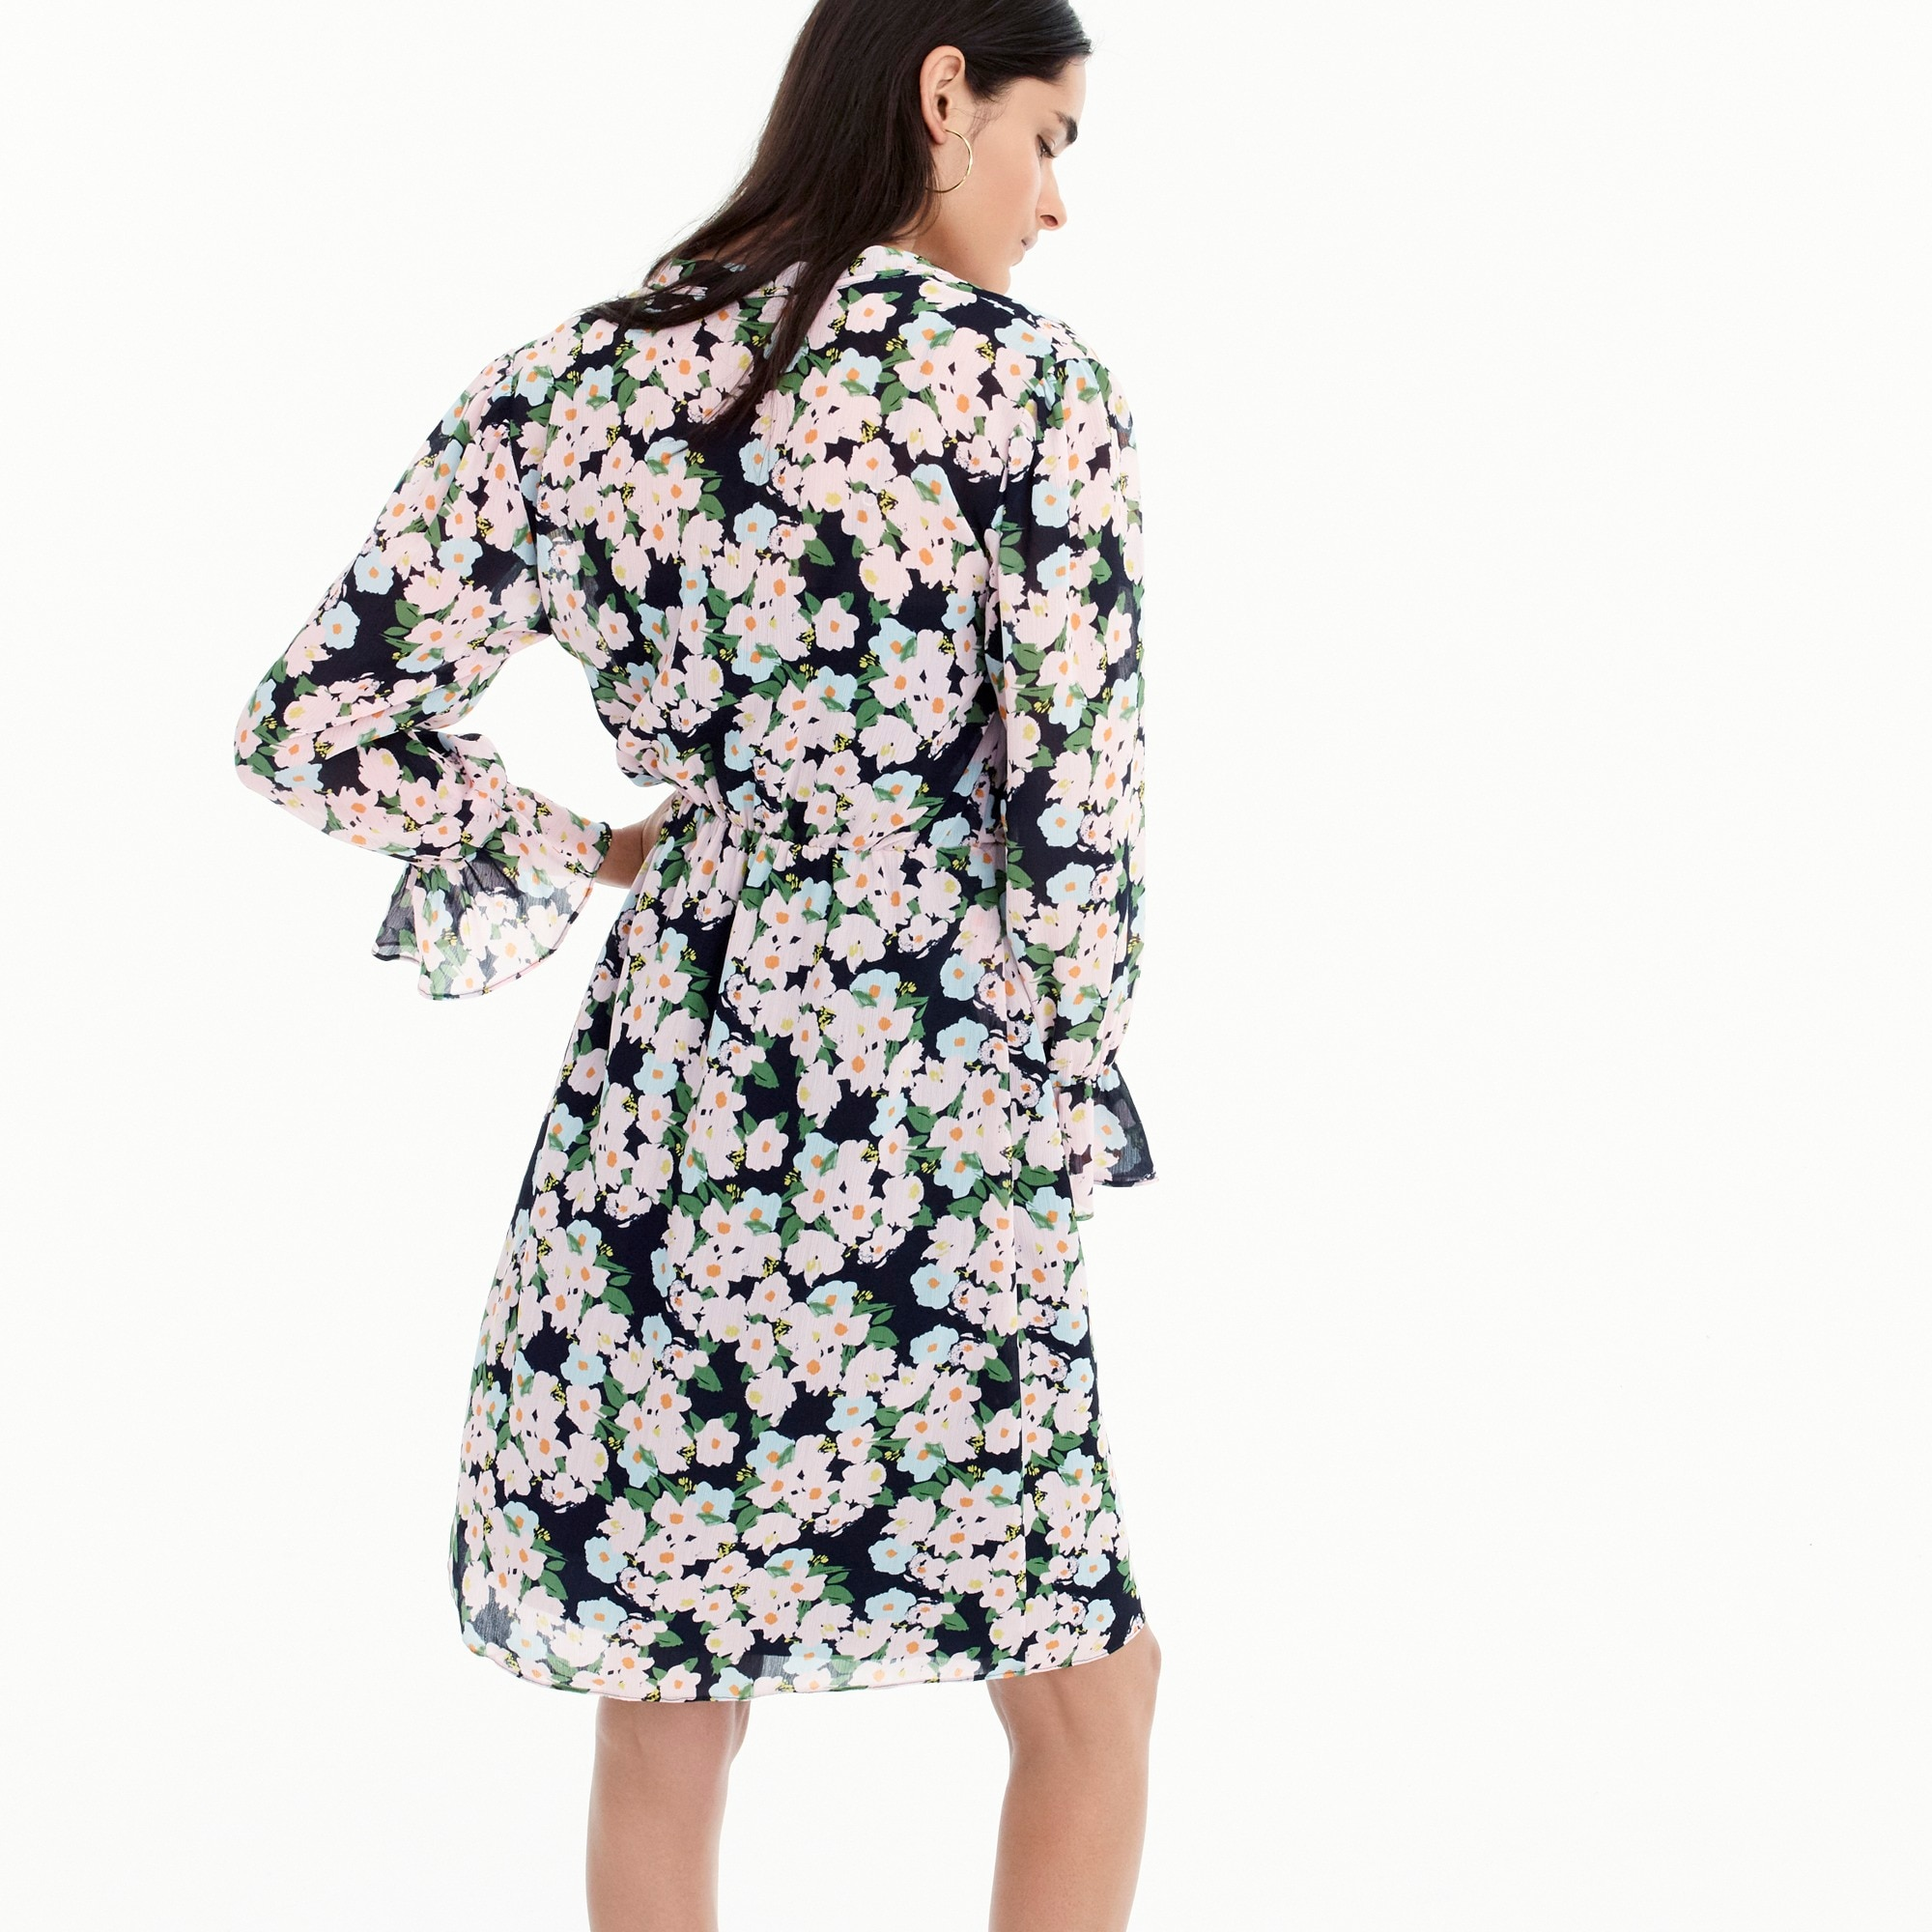 Image 3 for Tall J.Crew Mercantile drapey tie-front dress in French floral